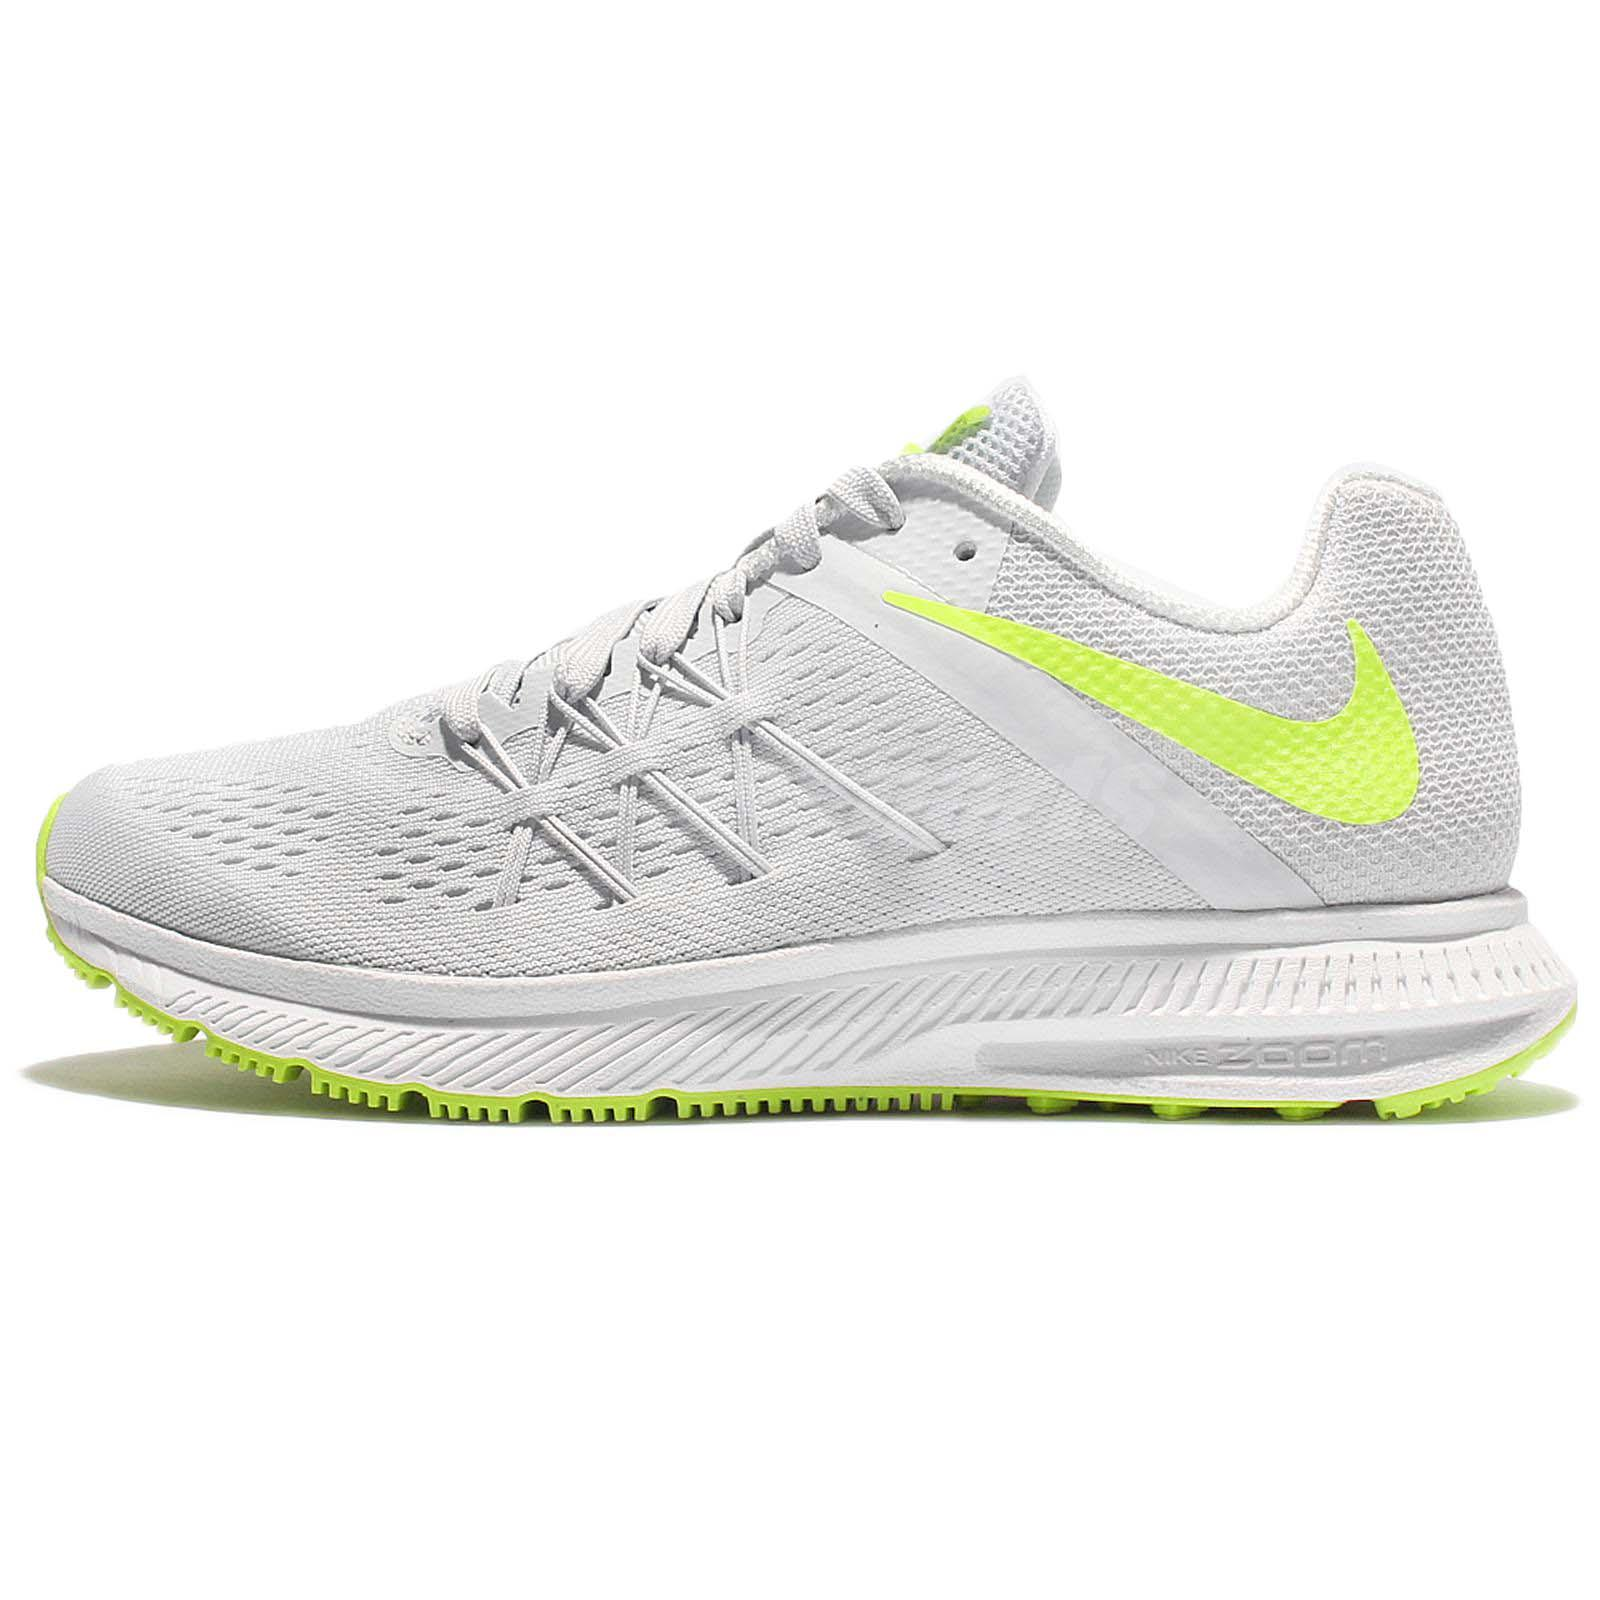 wholesale dealer c383d 102ae ... Wmns Nike Zoom Winflo 3 III Grey Yellow Women Running Shoes Sneakers  831562-009 ...